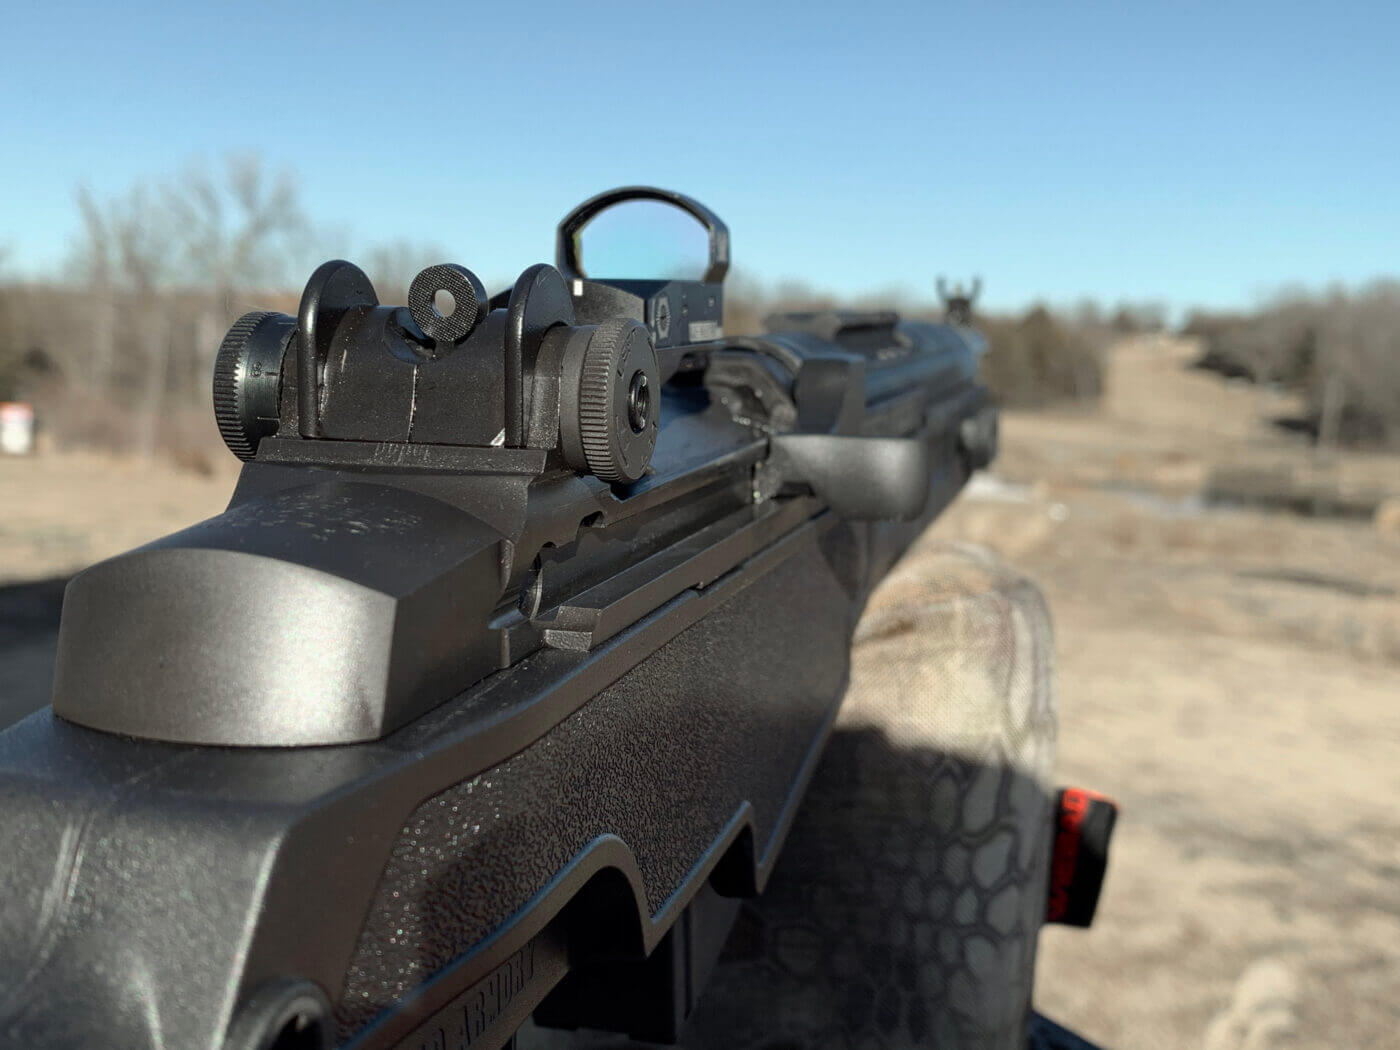 Red dot sight mounted on M1A SOCOM 16 CQB